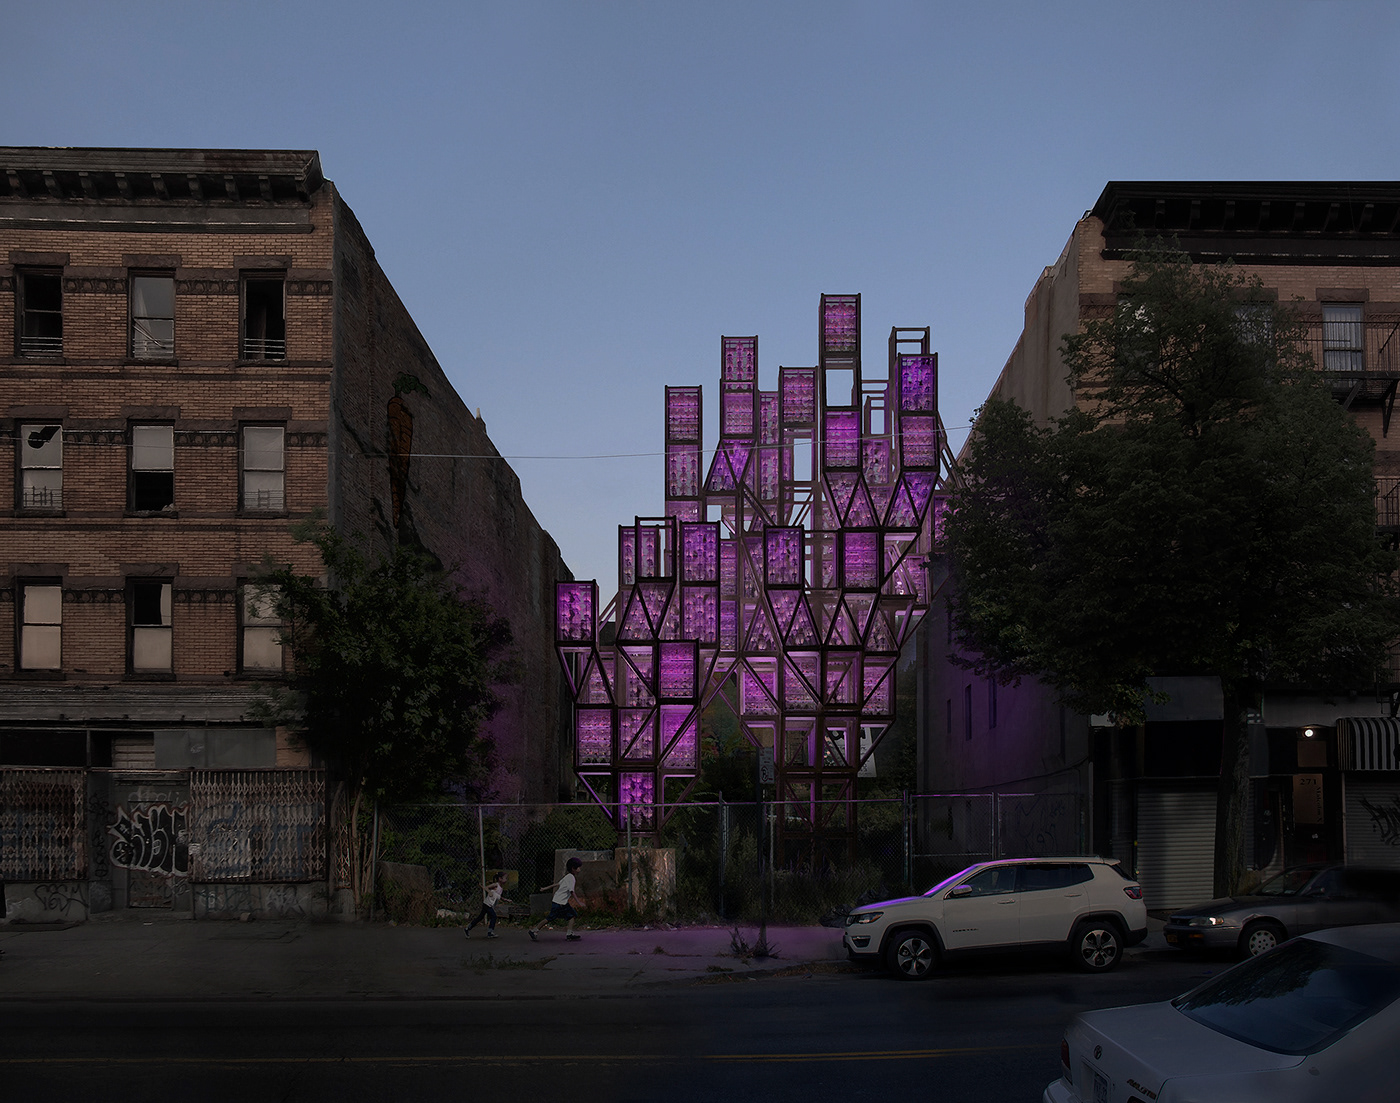 architecture product farm vertical agriculture Brooklyn nyc modular installation interaction